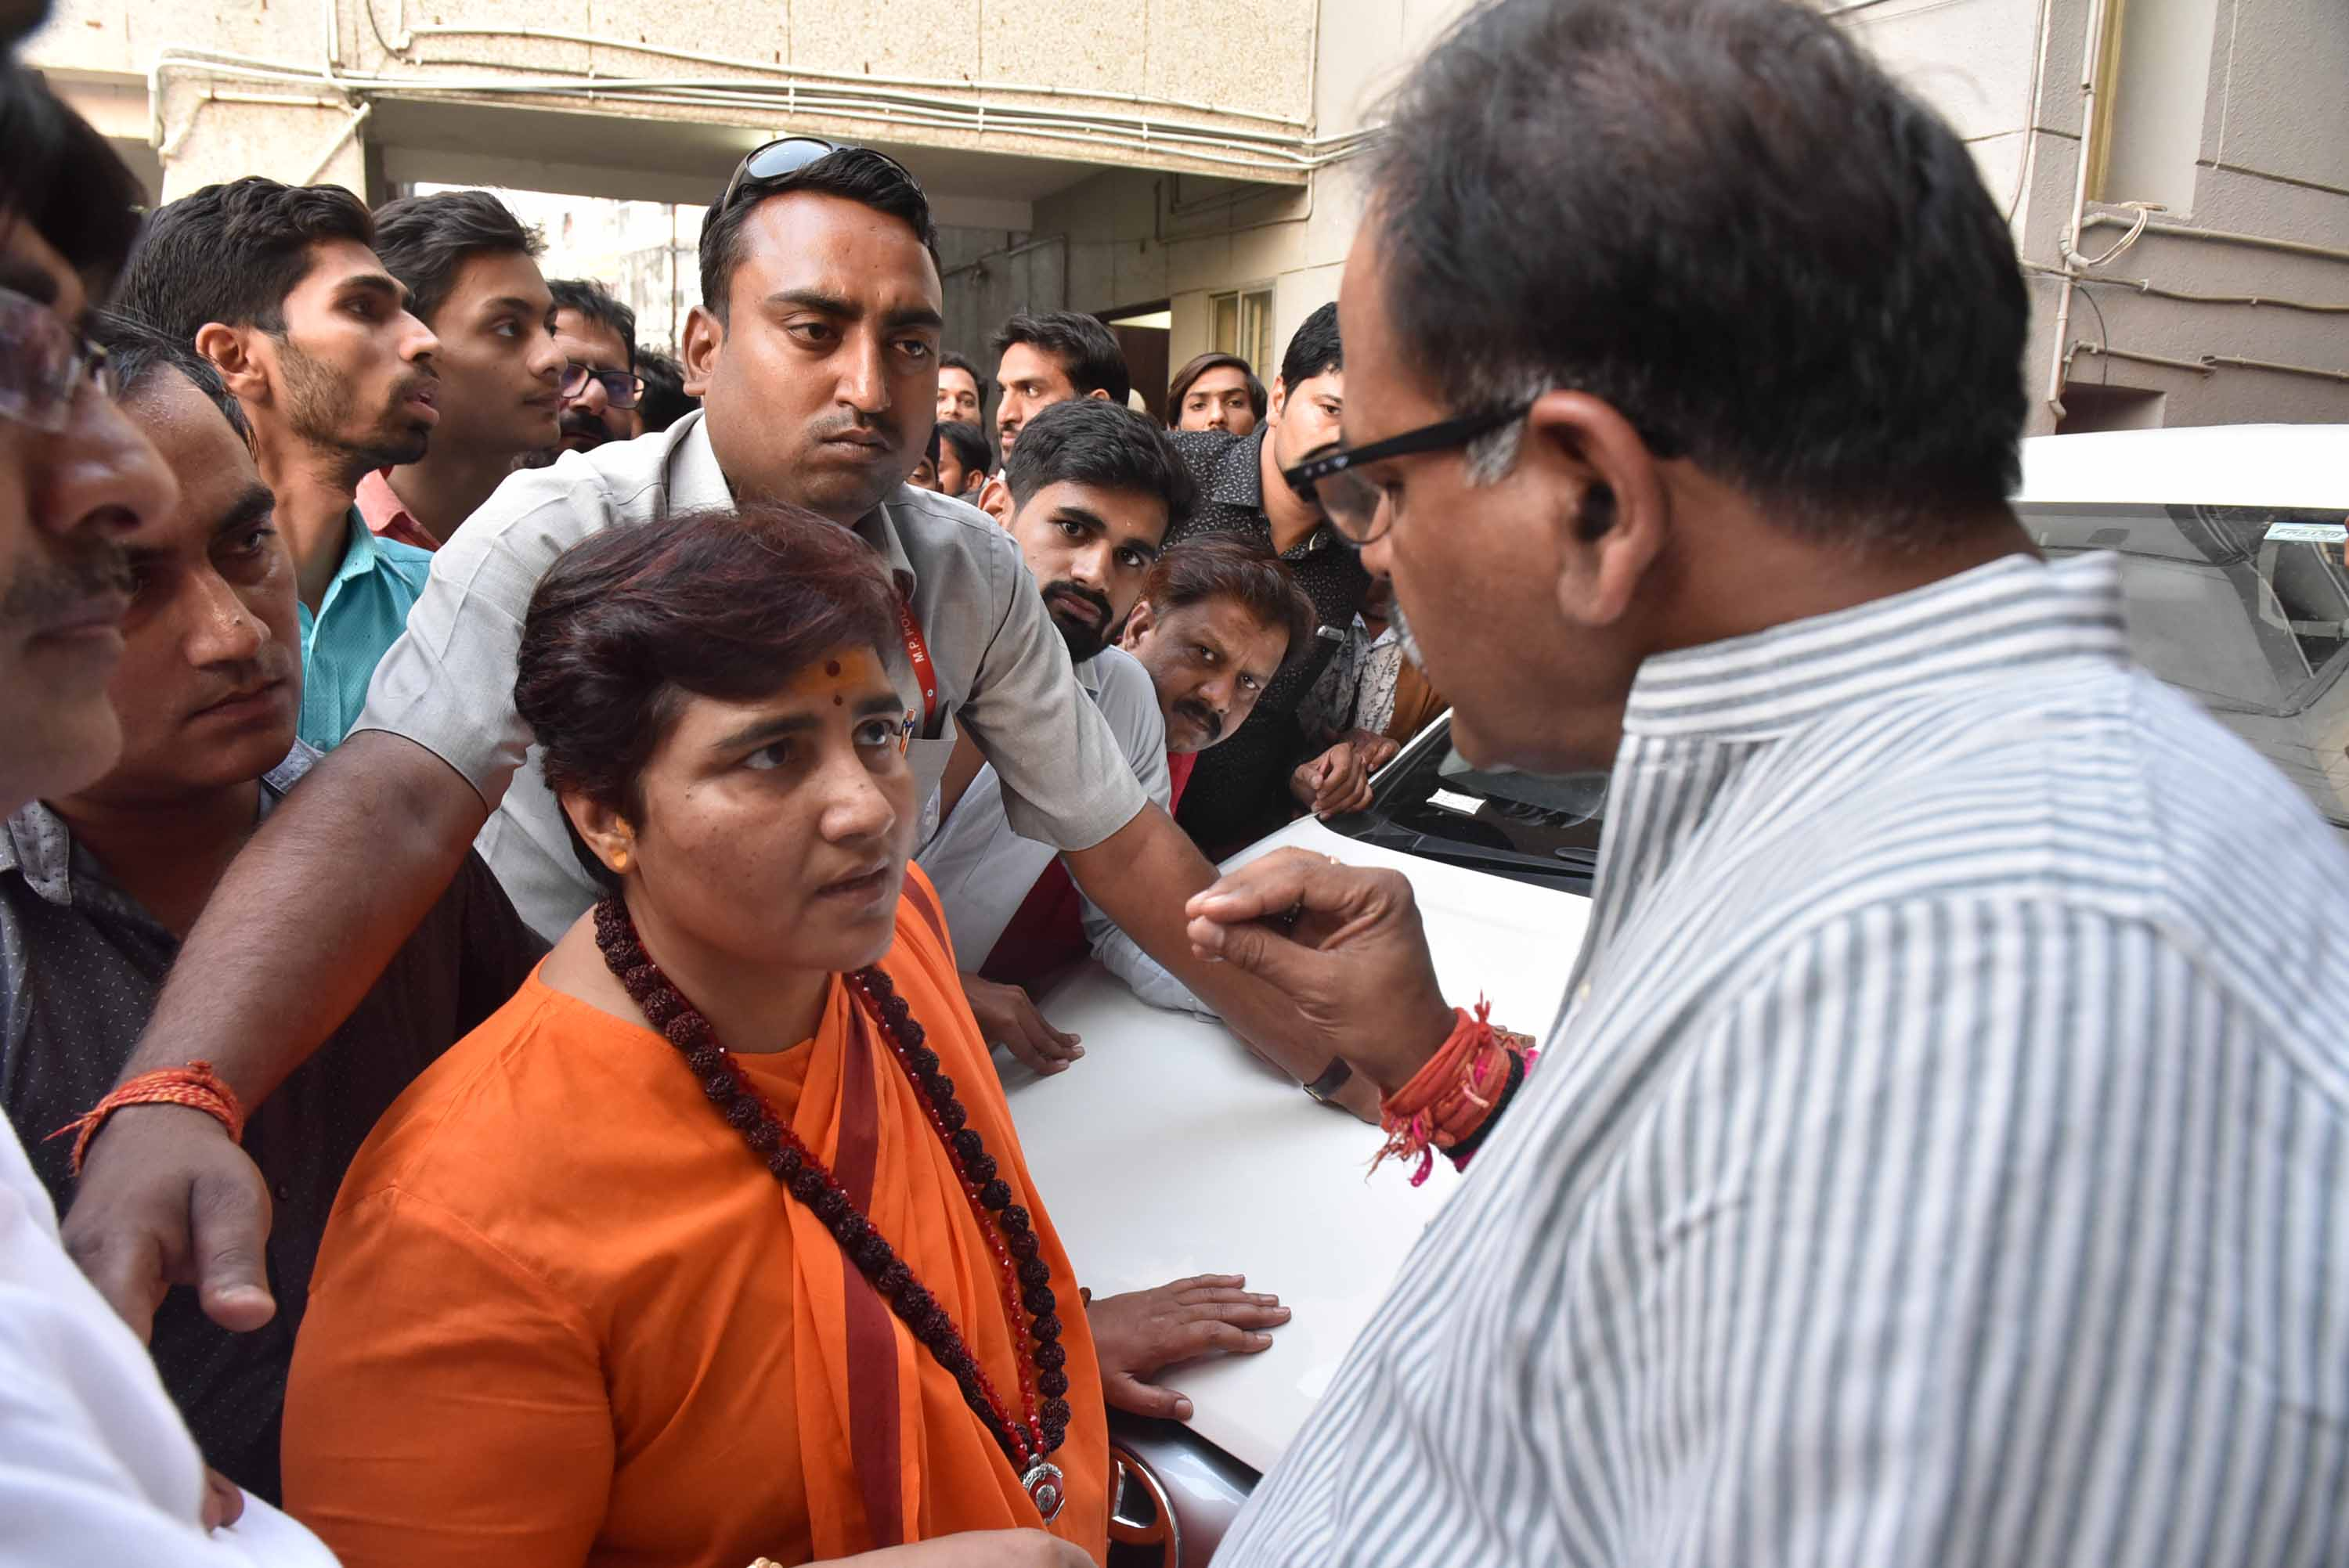 Pragya Thakur (in orange) is seen after a meeting at a state BJP office on April 17 in Bhopal, India.